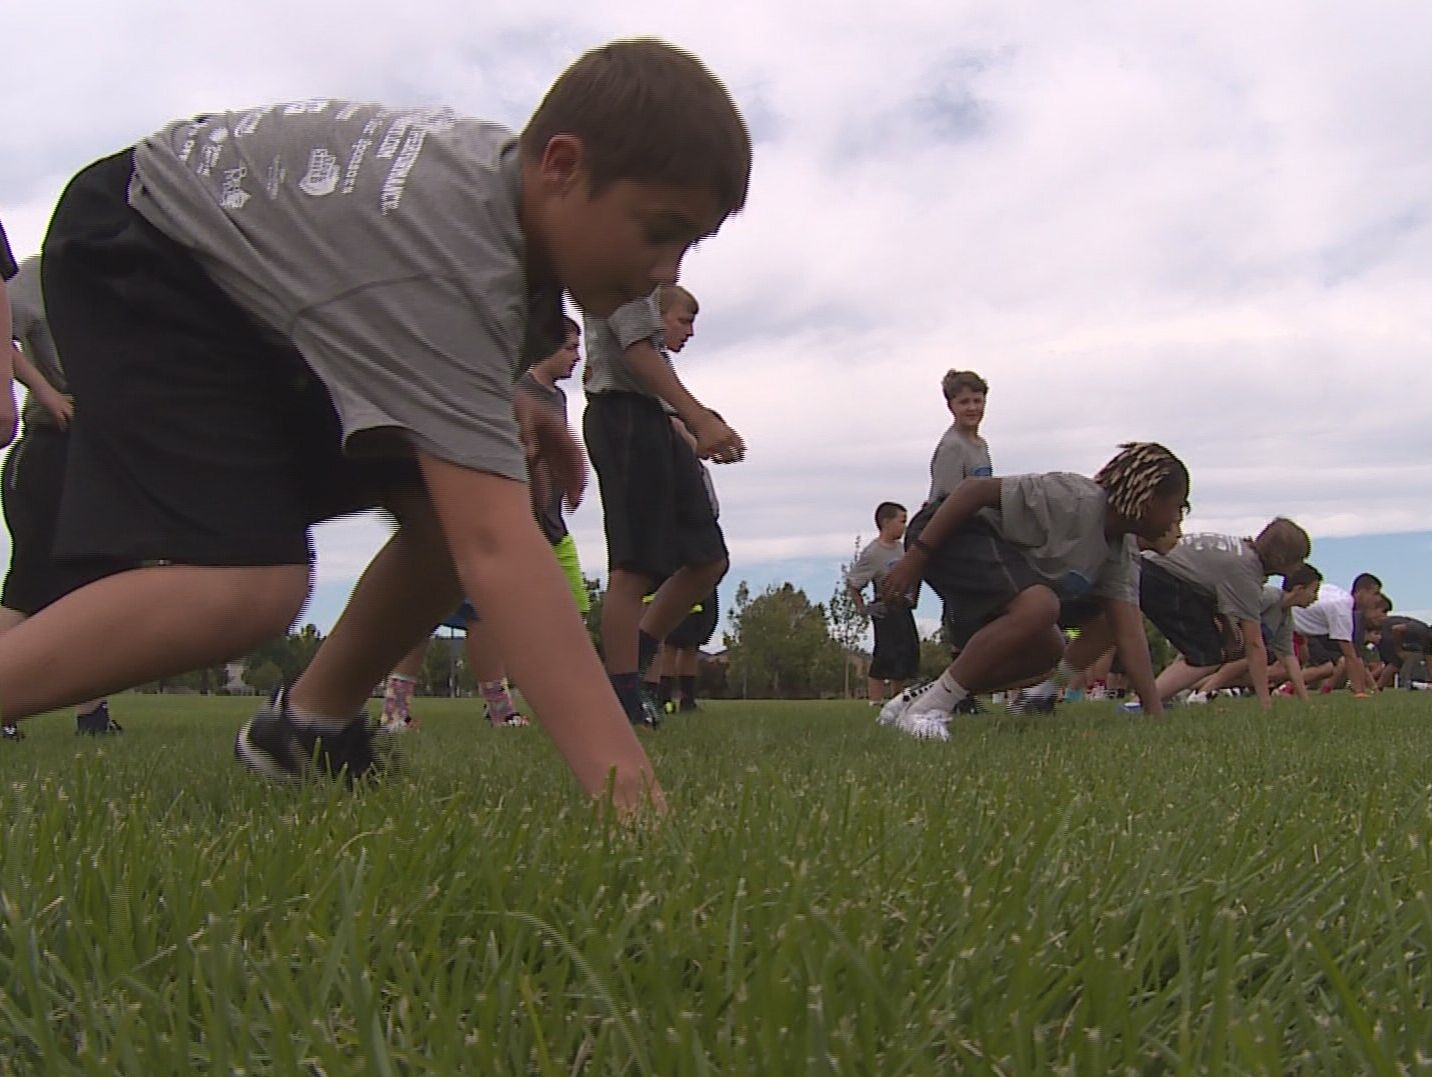 Over 60 kids participated in LT's football camp.